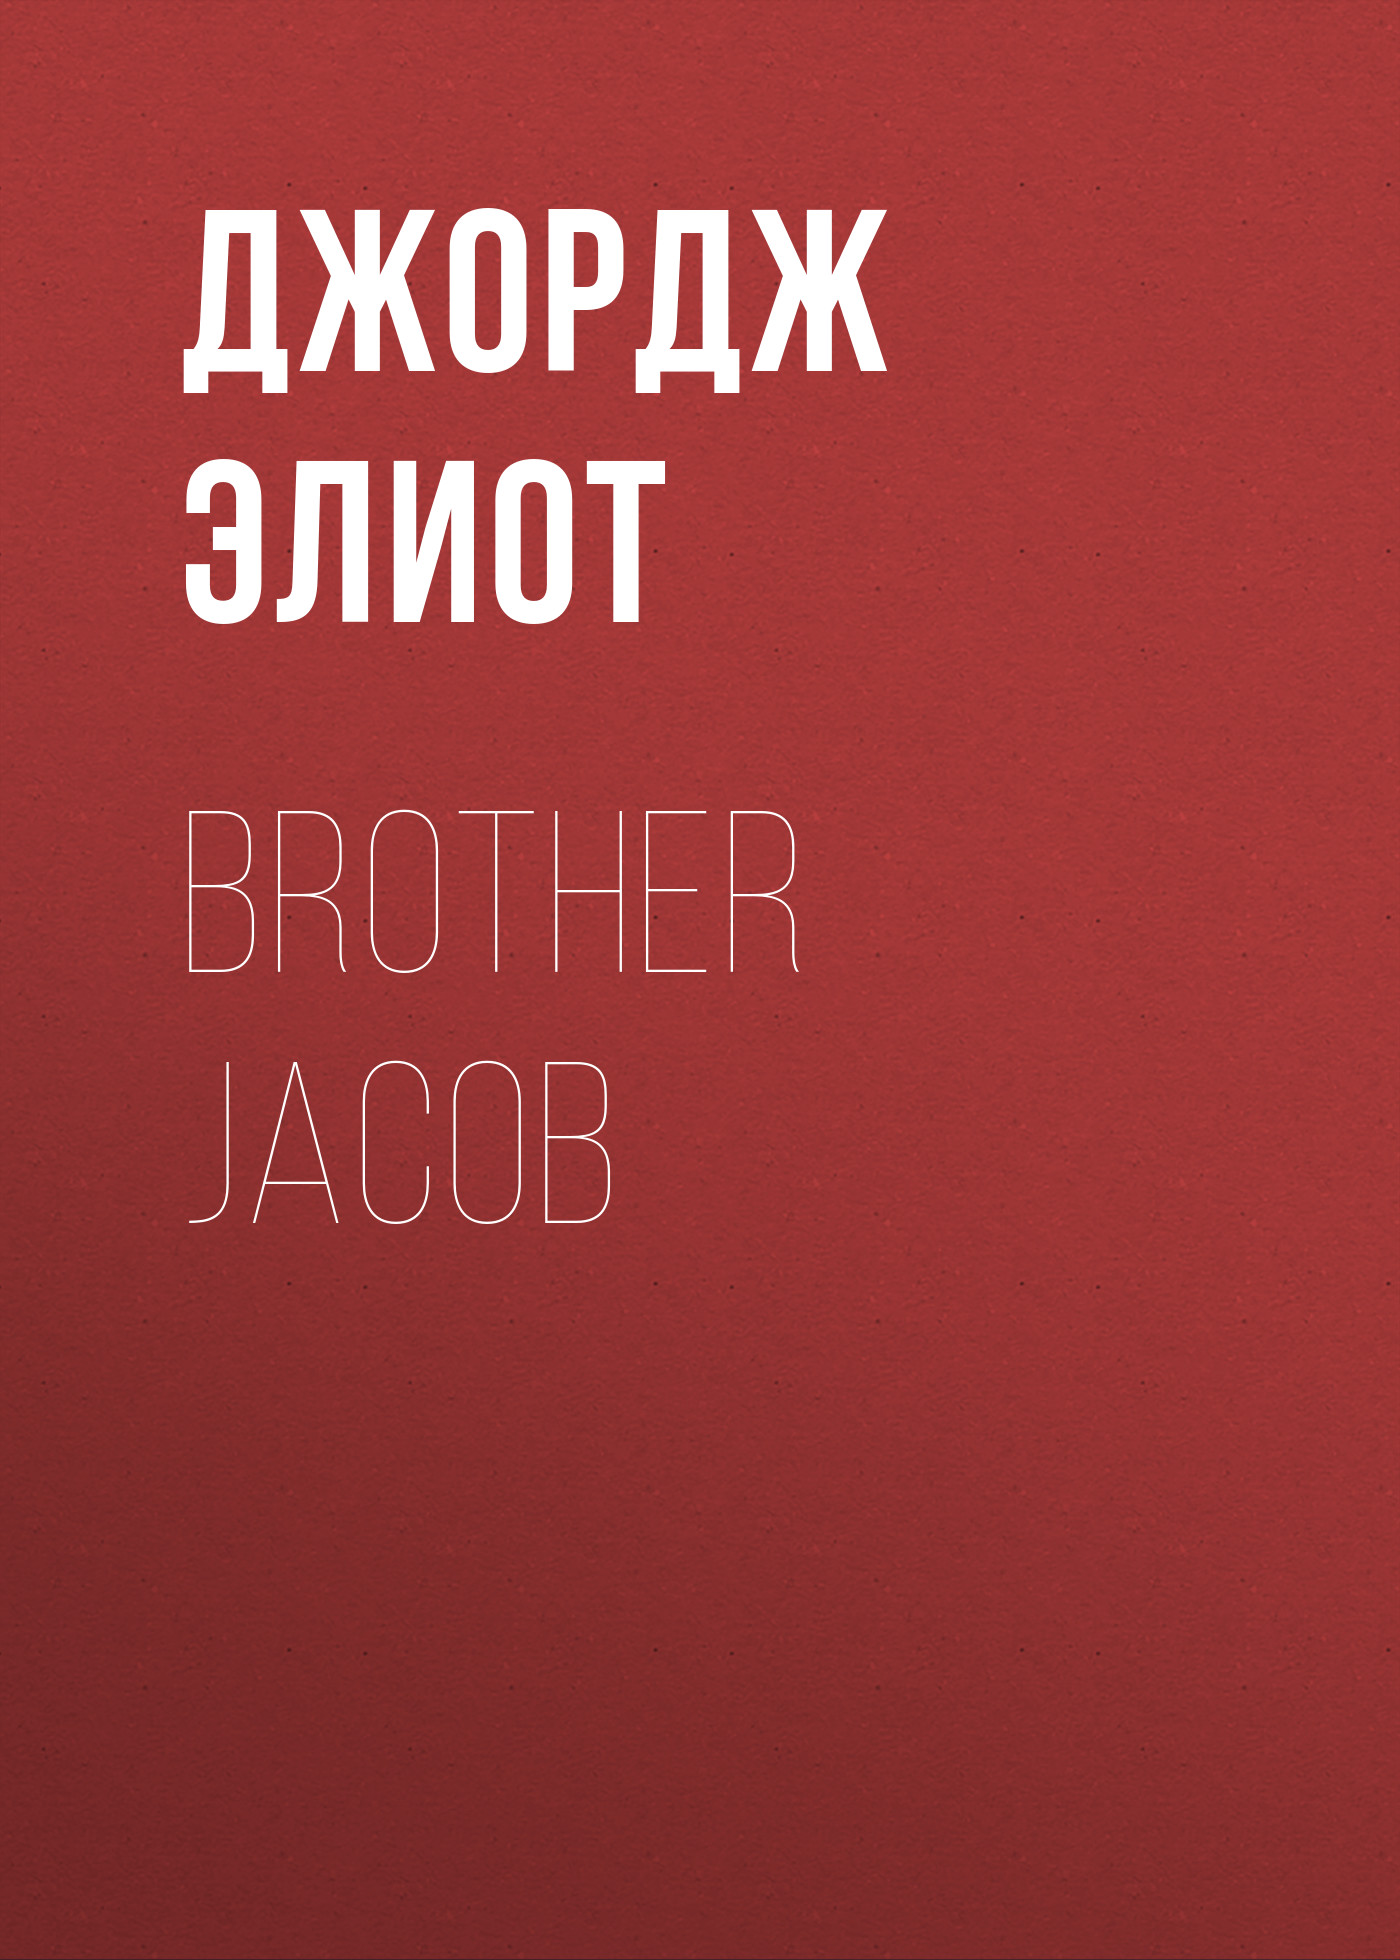 лучшая цена Джордж Элиот Brother Jacob